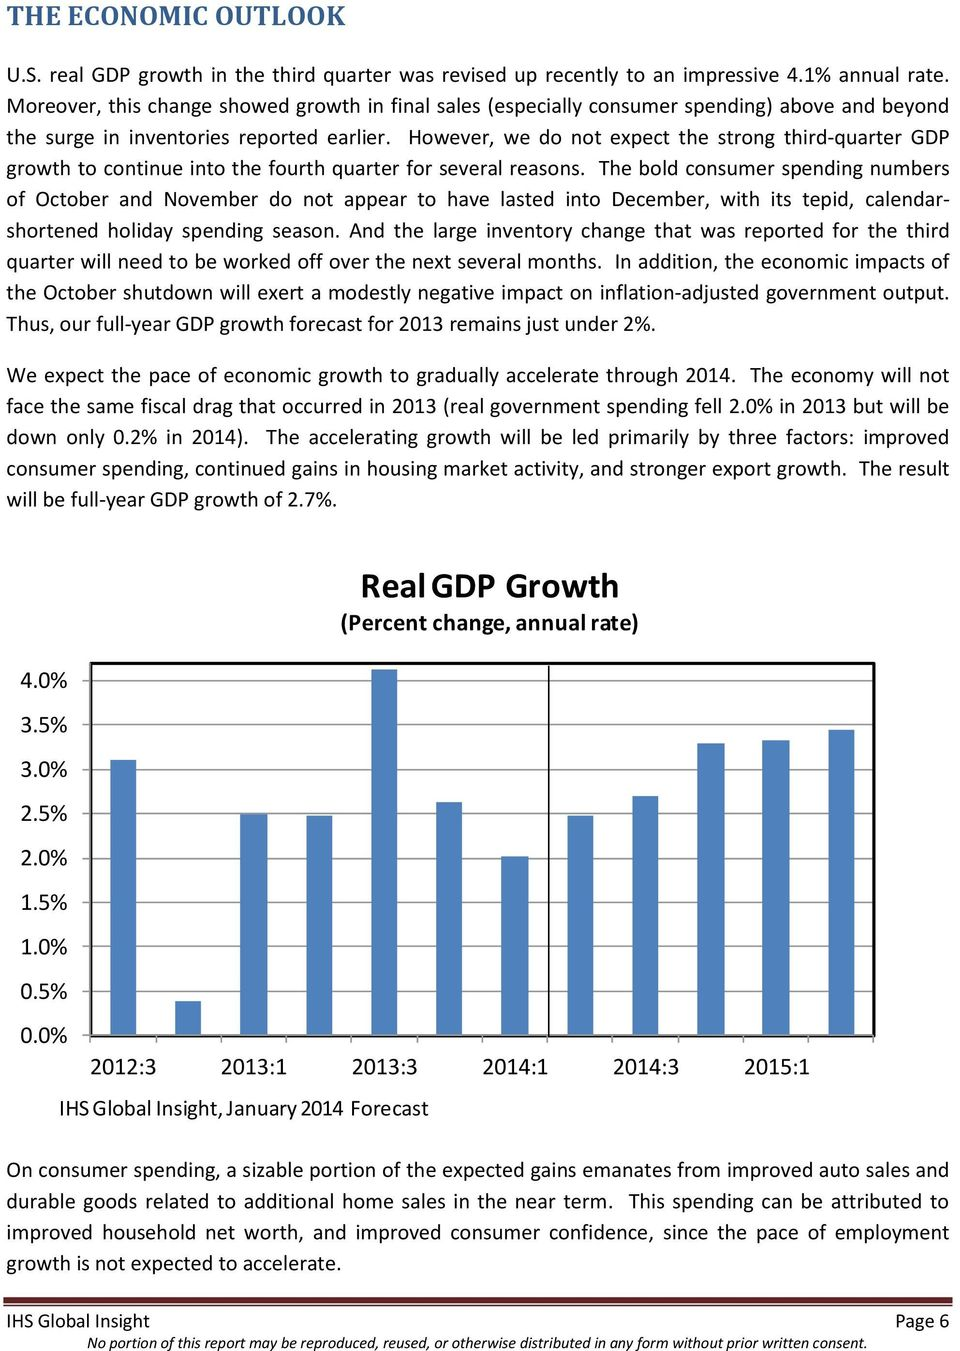 However, we do not expect the strong third-quarter GDP growth to continue into the fourth quarter for several reasons.